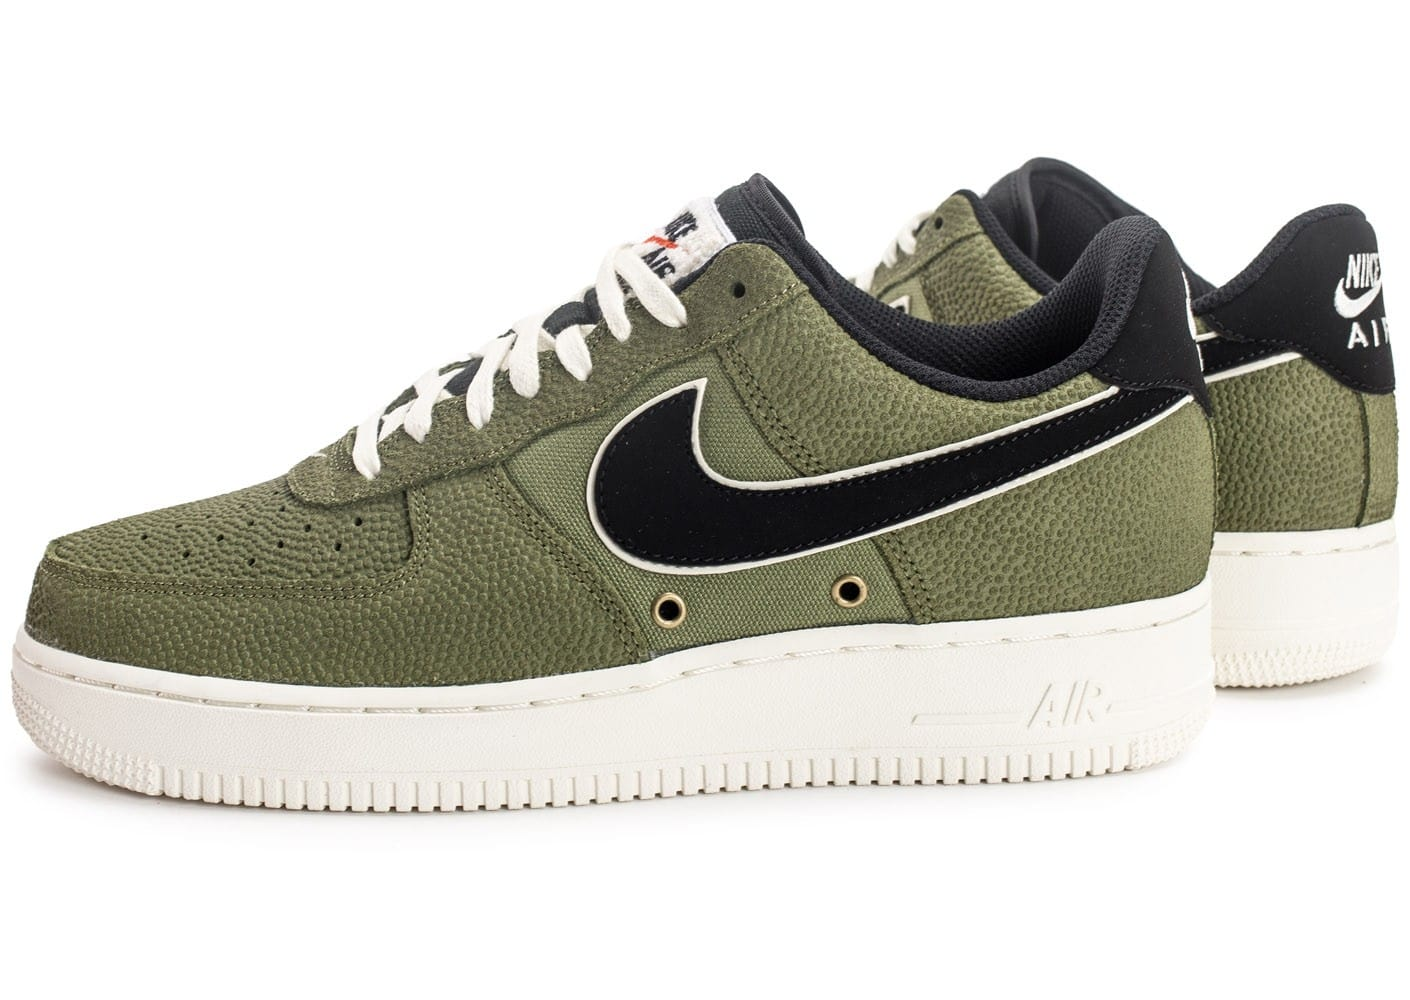 Nike air force 1 39 07 lv08 basketball leather verte chaussures homme chausport - Timberland vert kaki ...